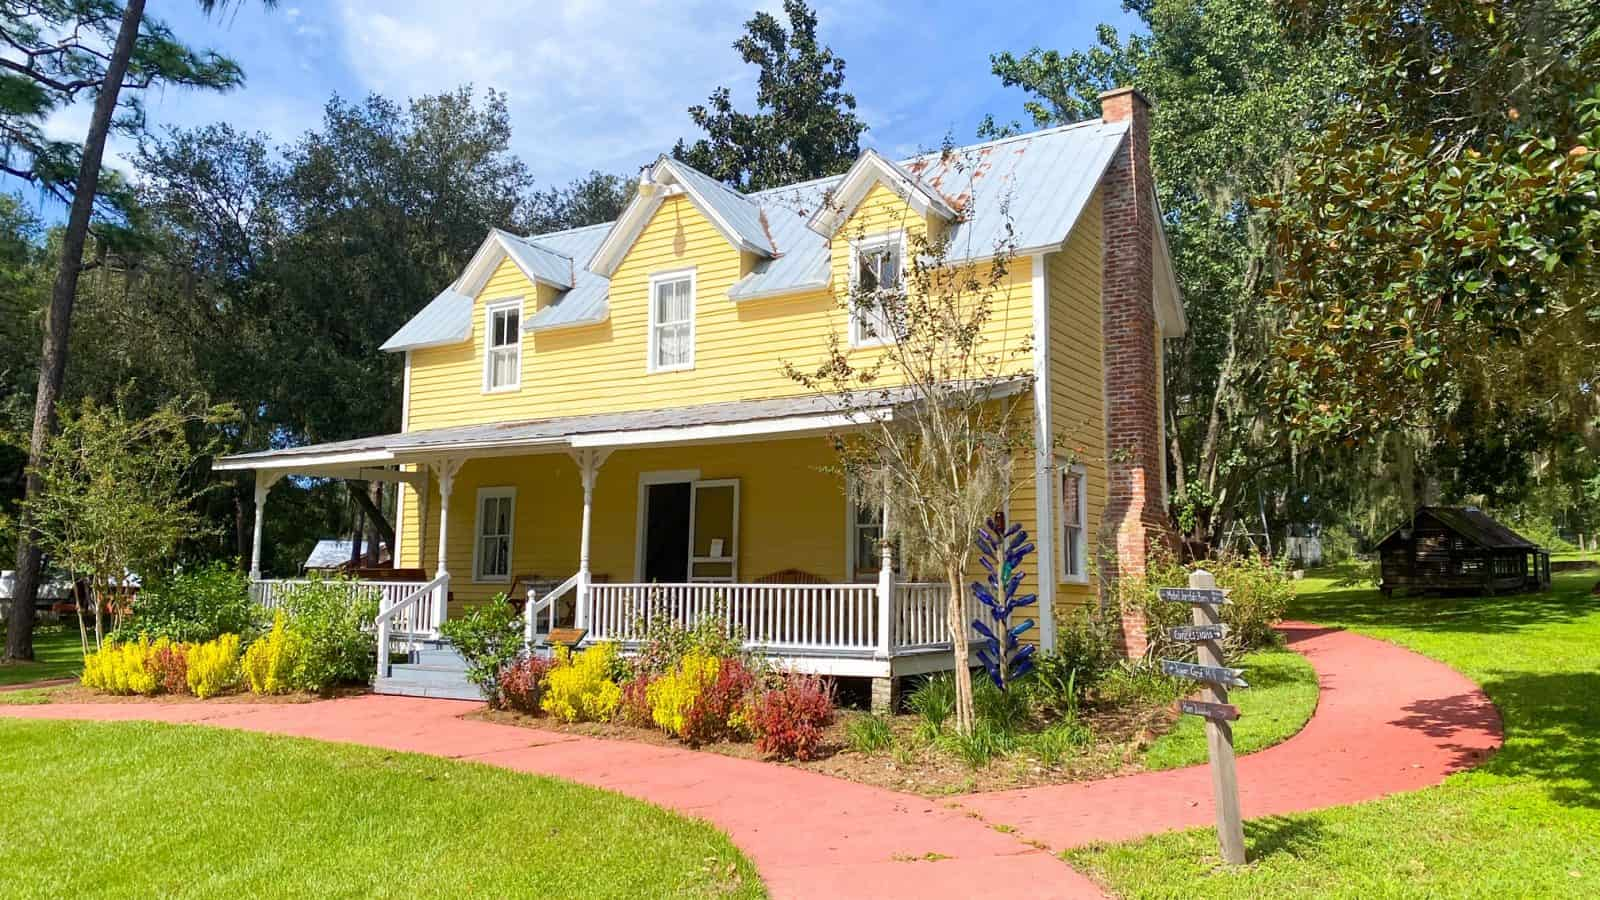 A completely restored and preserved home at the Pioneer Museum in Dade City.